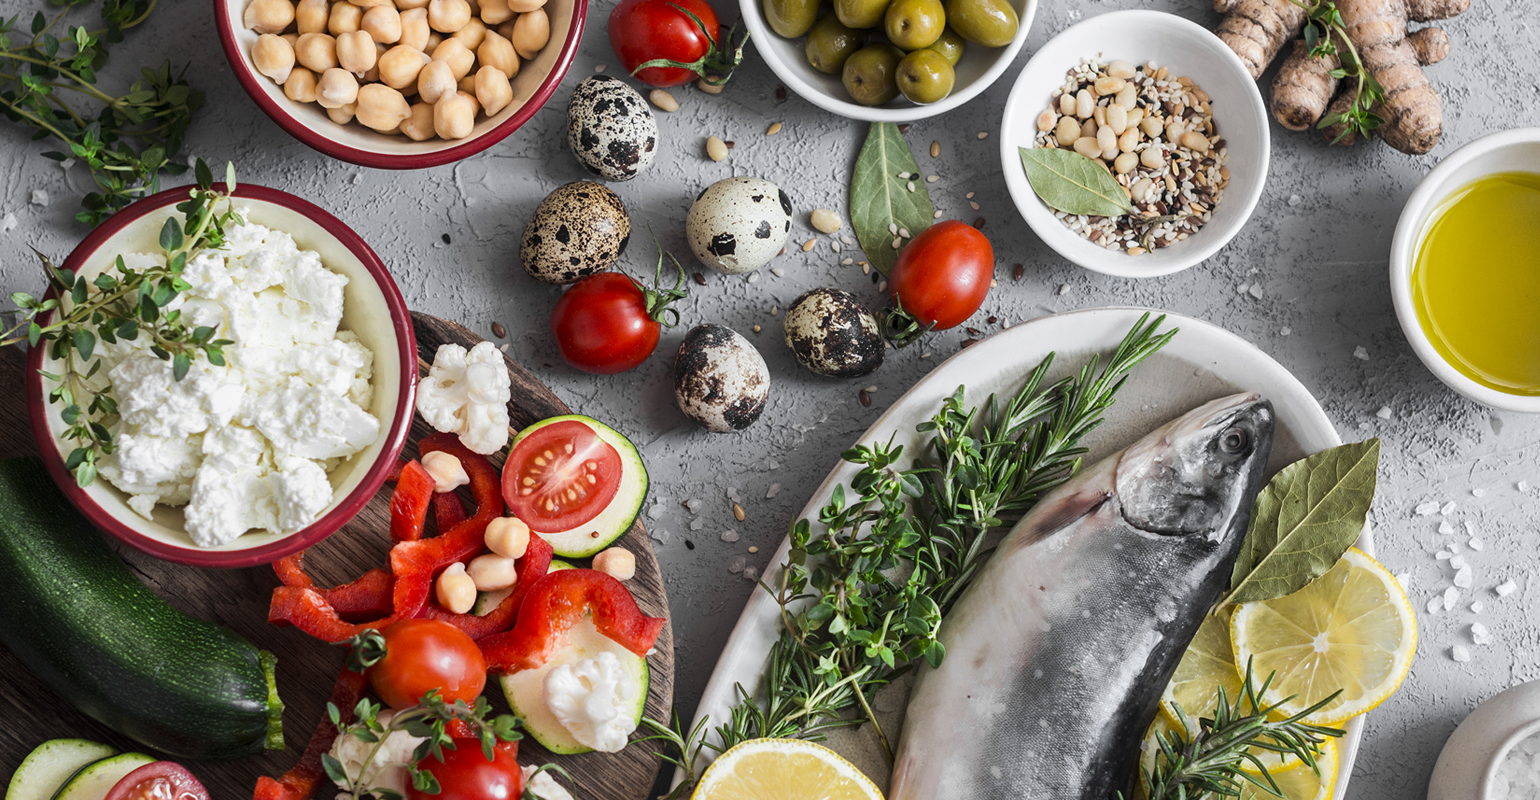 Study: Mediterranean diet might slow prostate cancer growth